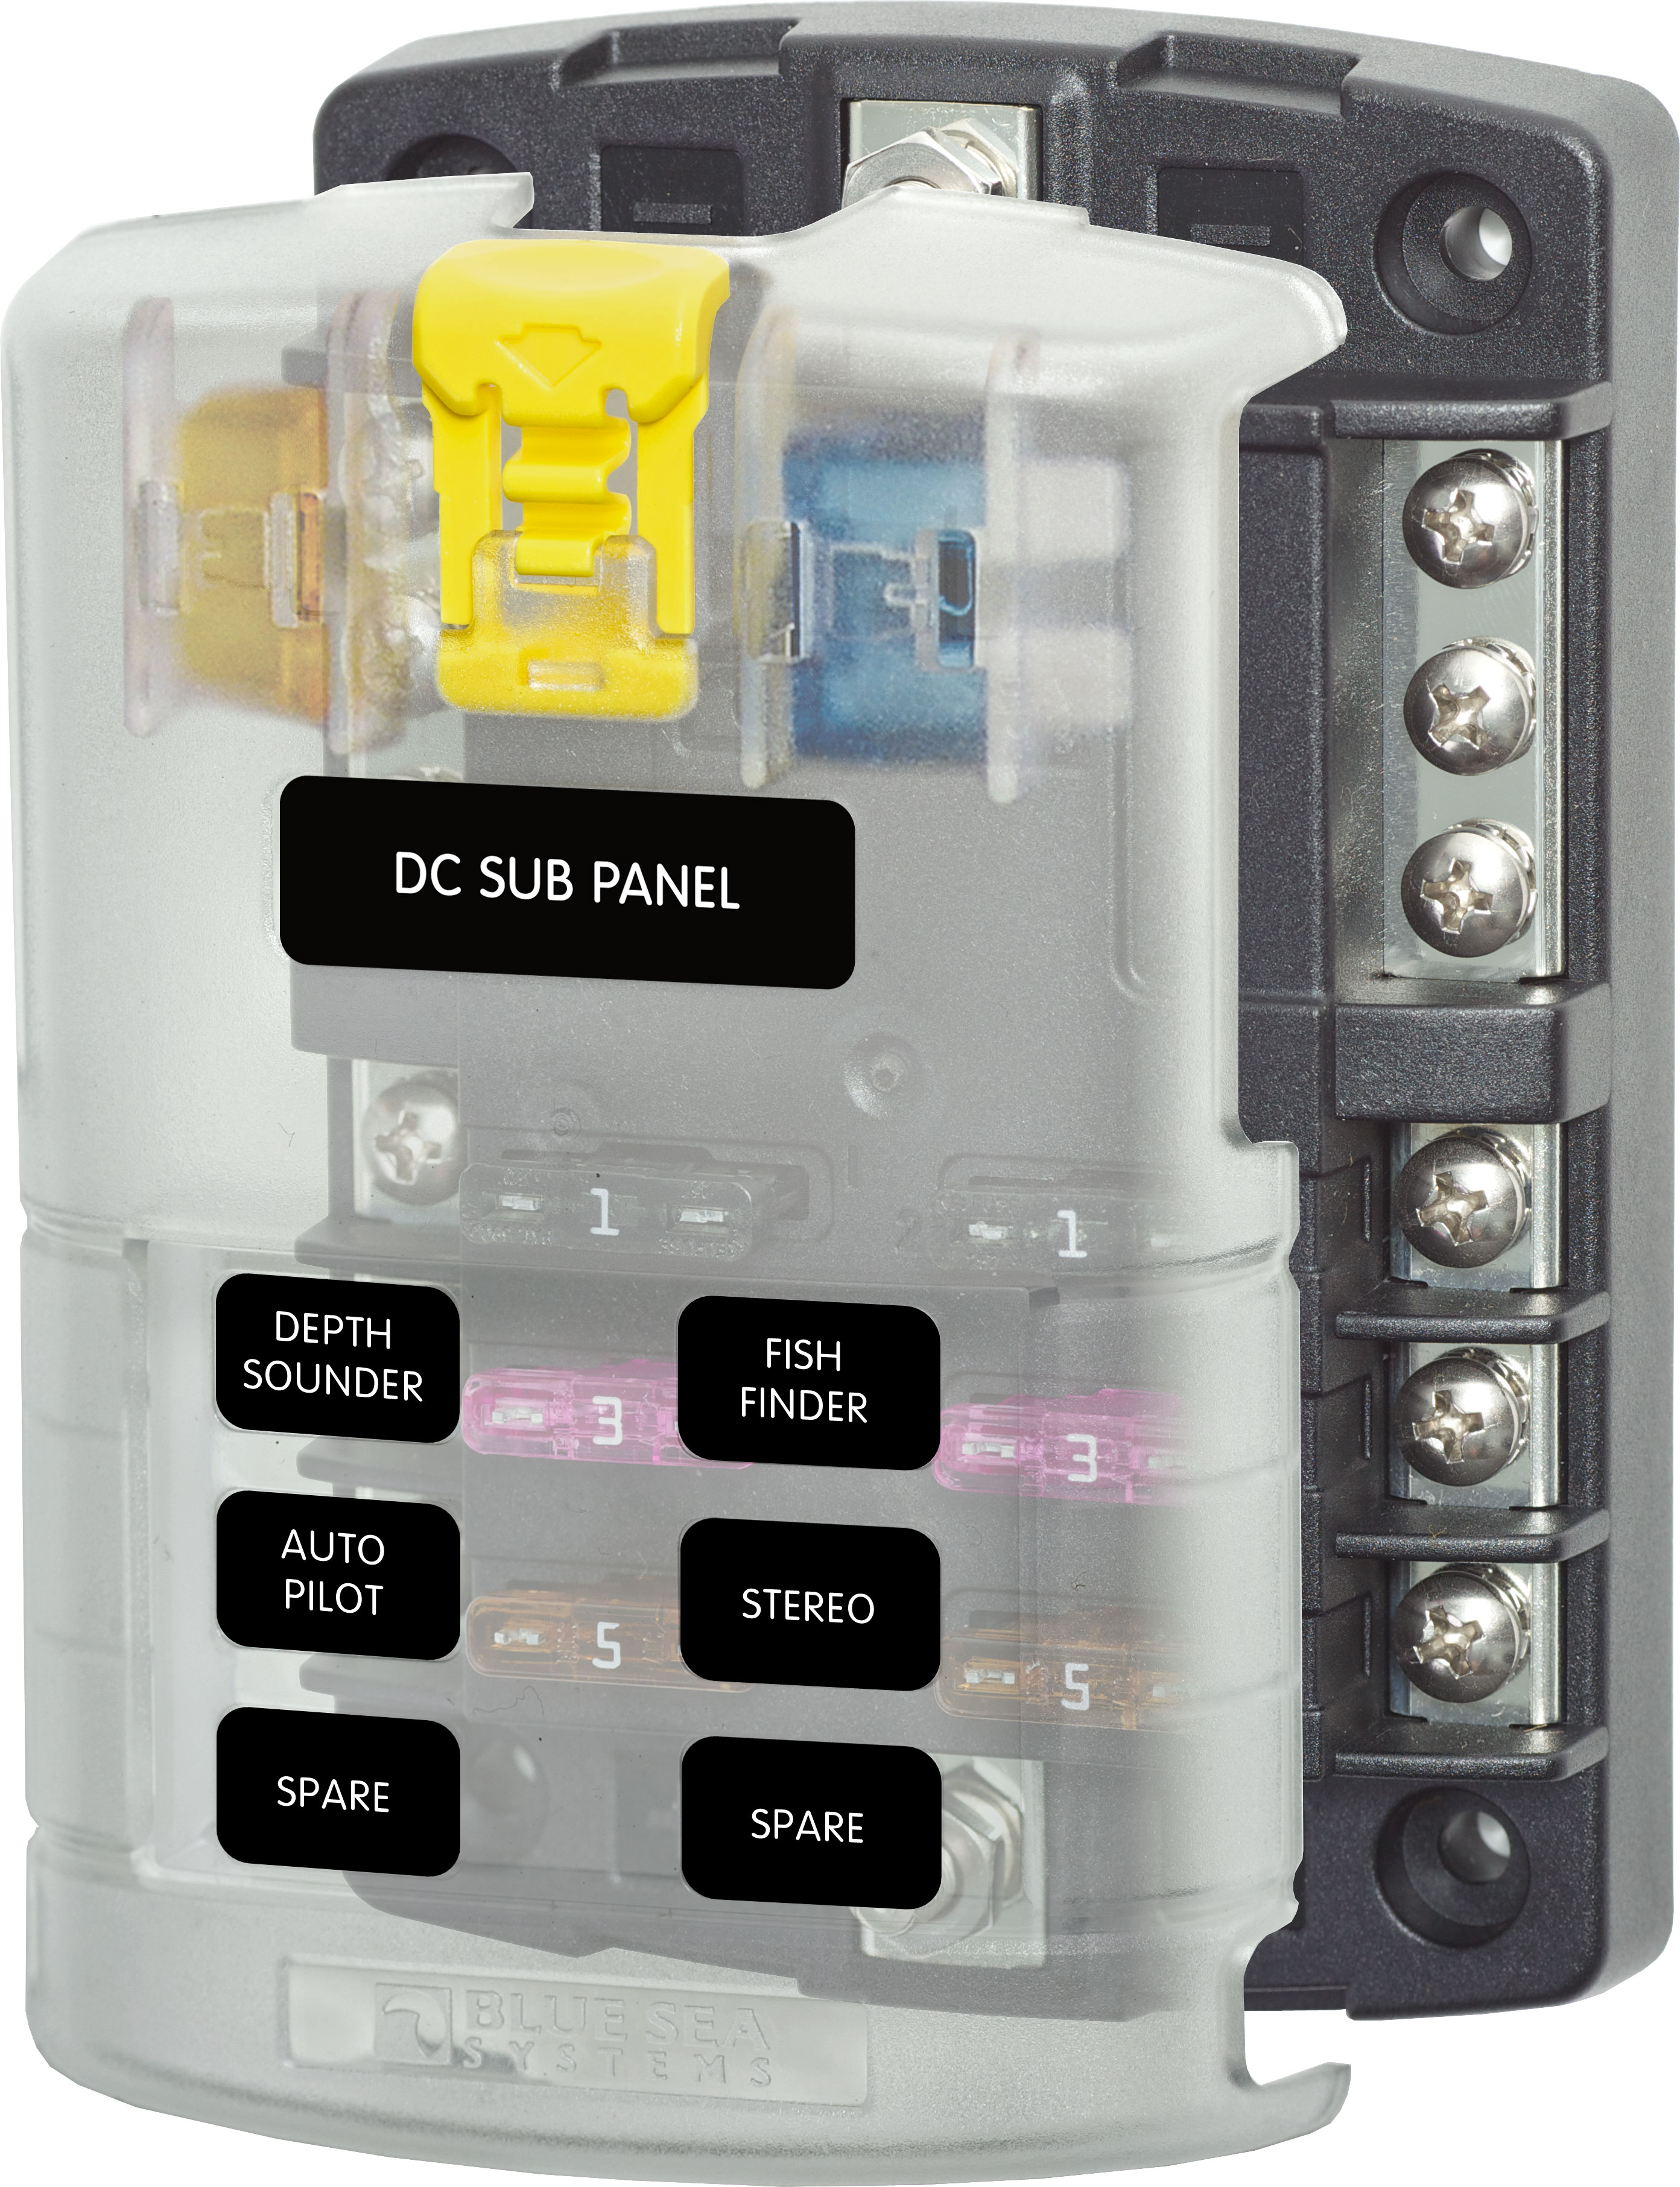 Watertight Fuse Box Cover Clip Wiring Diagram Libraries Clips Schematic Diagramswatertight 7